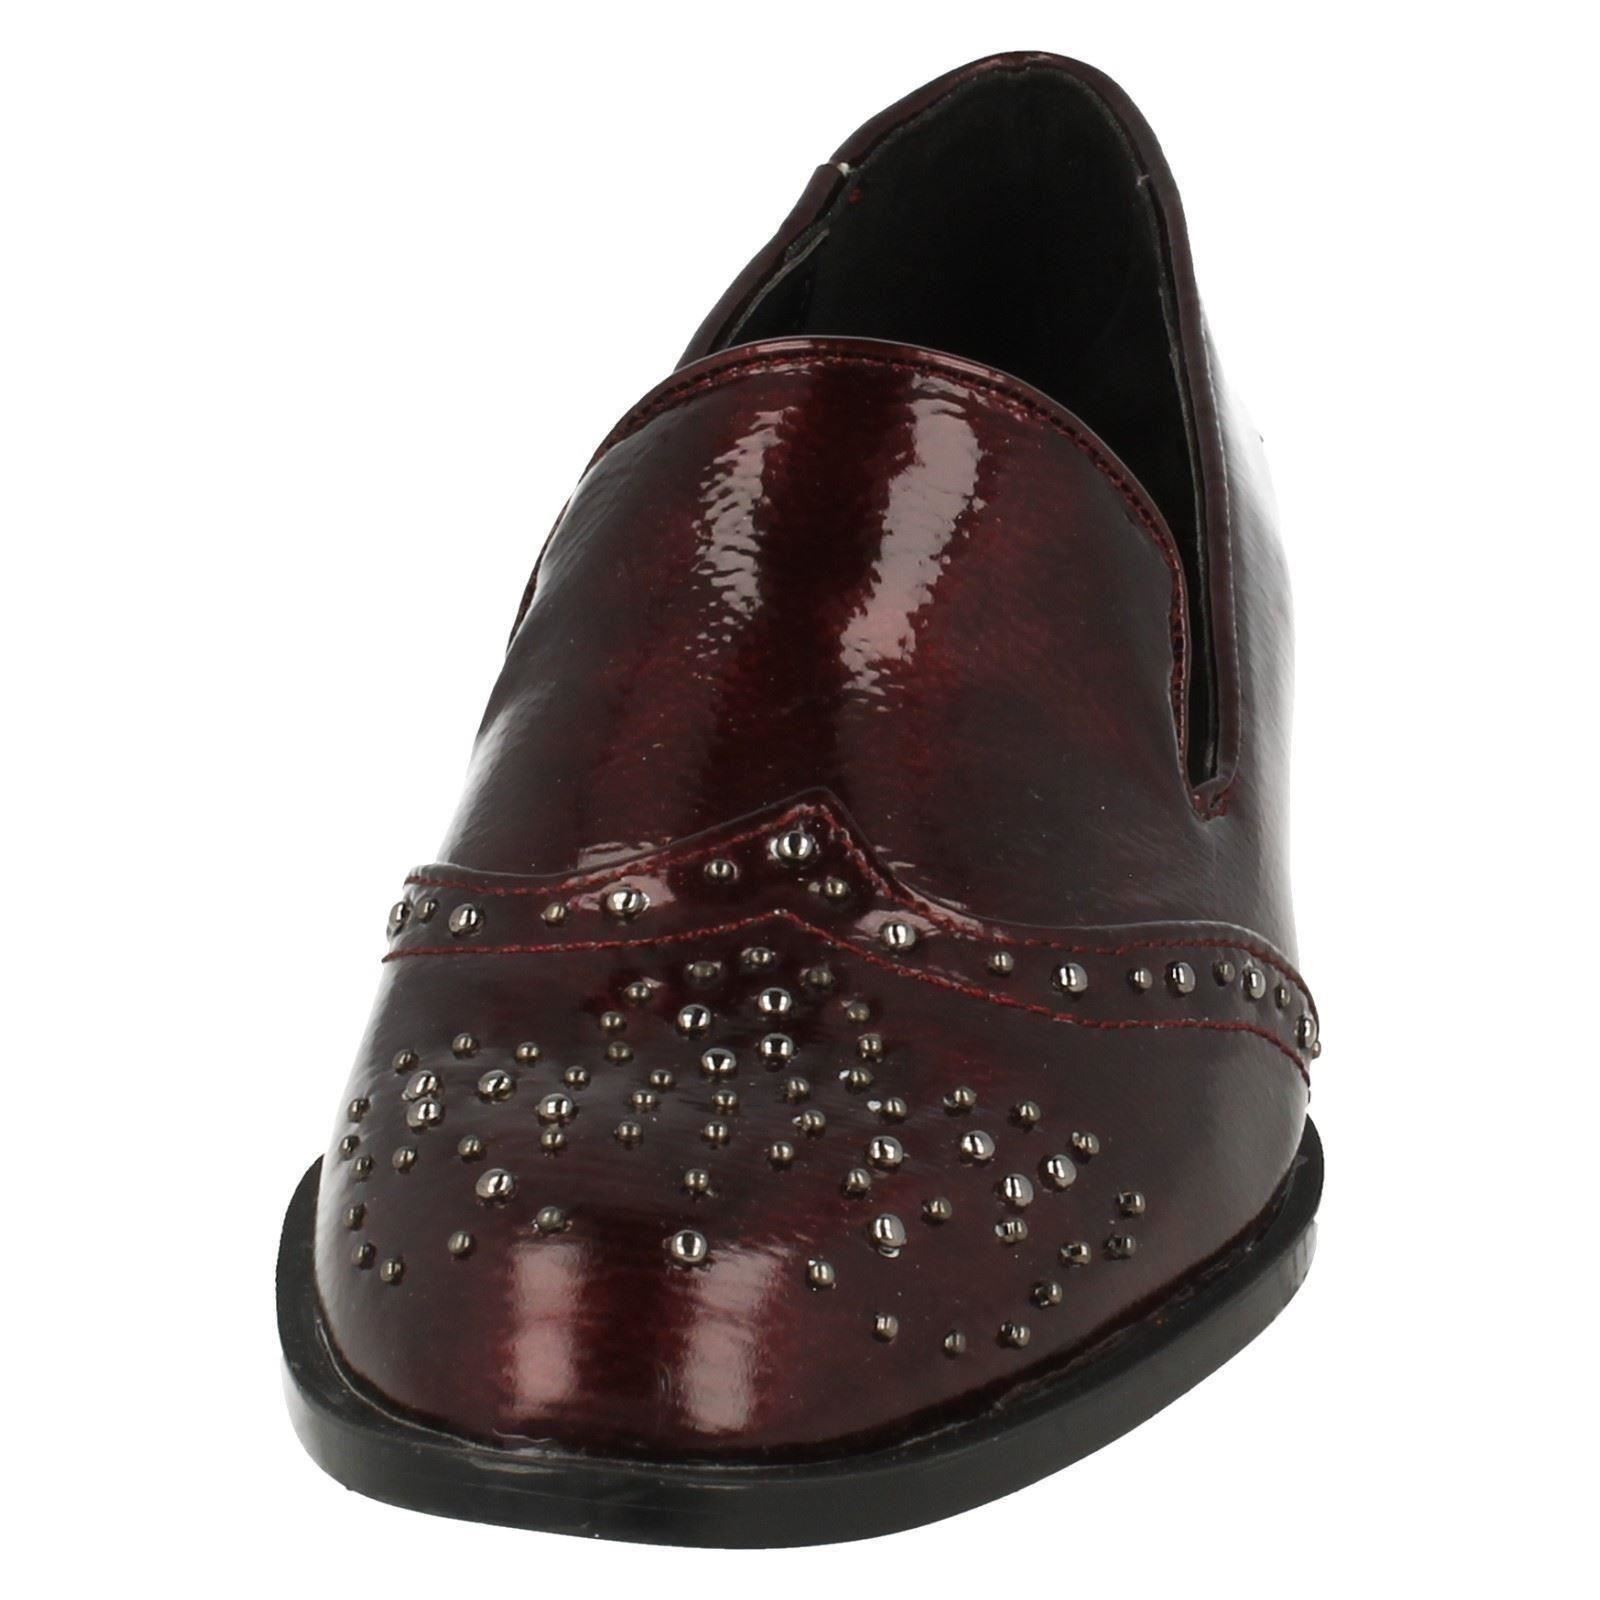 Ladies-Spot-On-Slip-On-Loafer-Style-Shoe